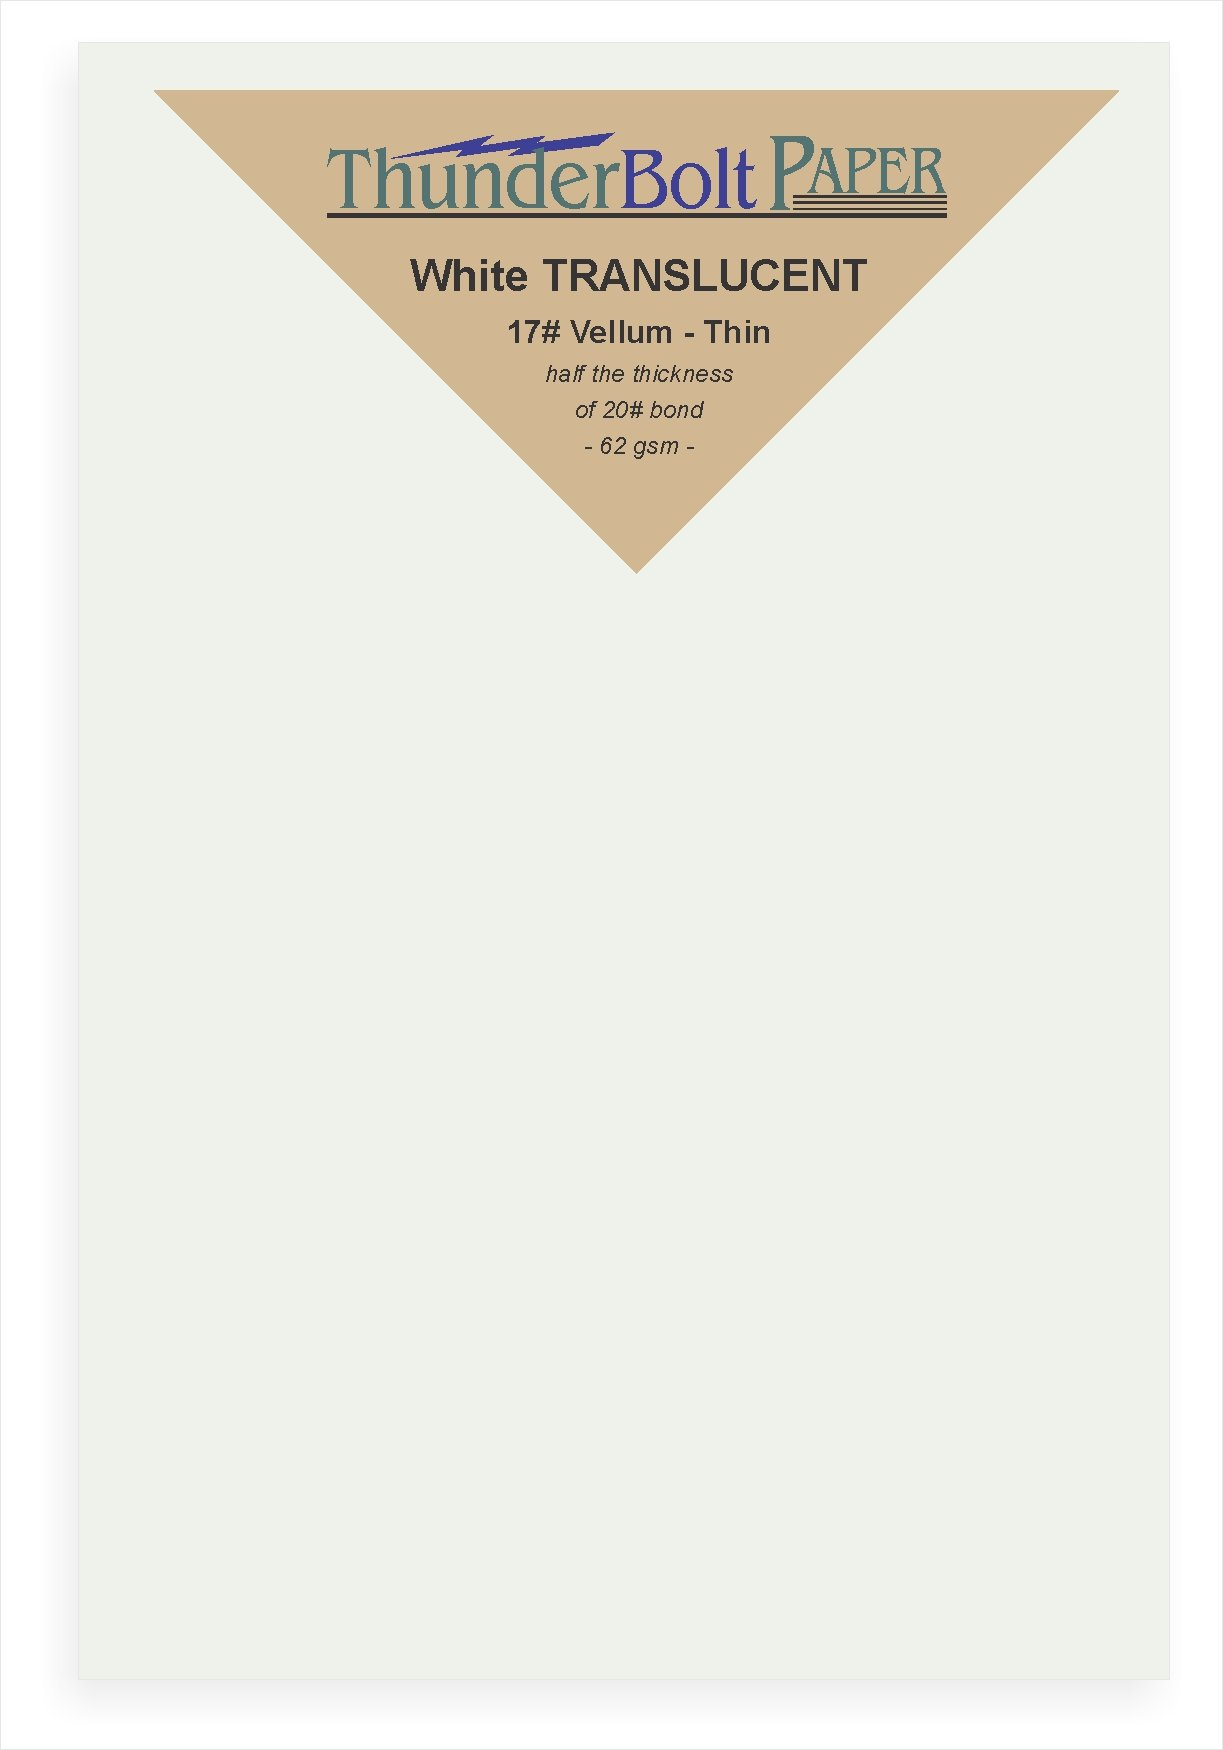 2000 Soft Off-White Translucent 17# Thin Sheets - 4'' X 6'' (4X6 Inches) Photo|Card|Frame Size - 17 lb/Pound Light Weight Fine Quality Paper - Tracing, Fun or Formal Use - Not a Clear Transparent by ThunderBolt Paper